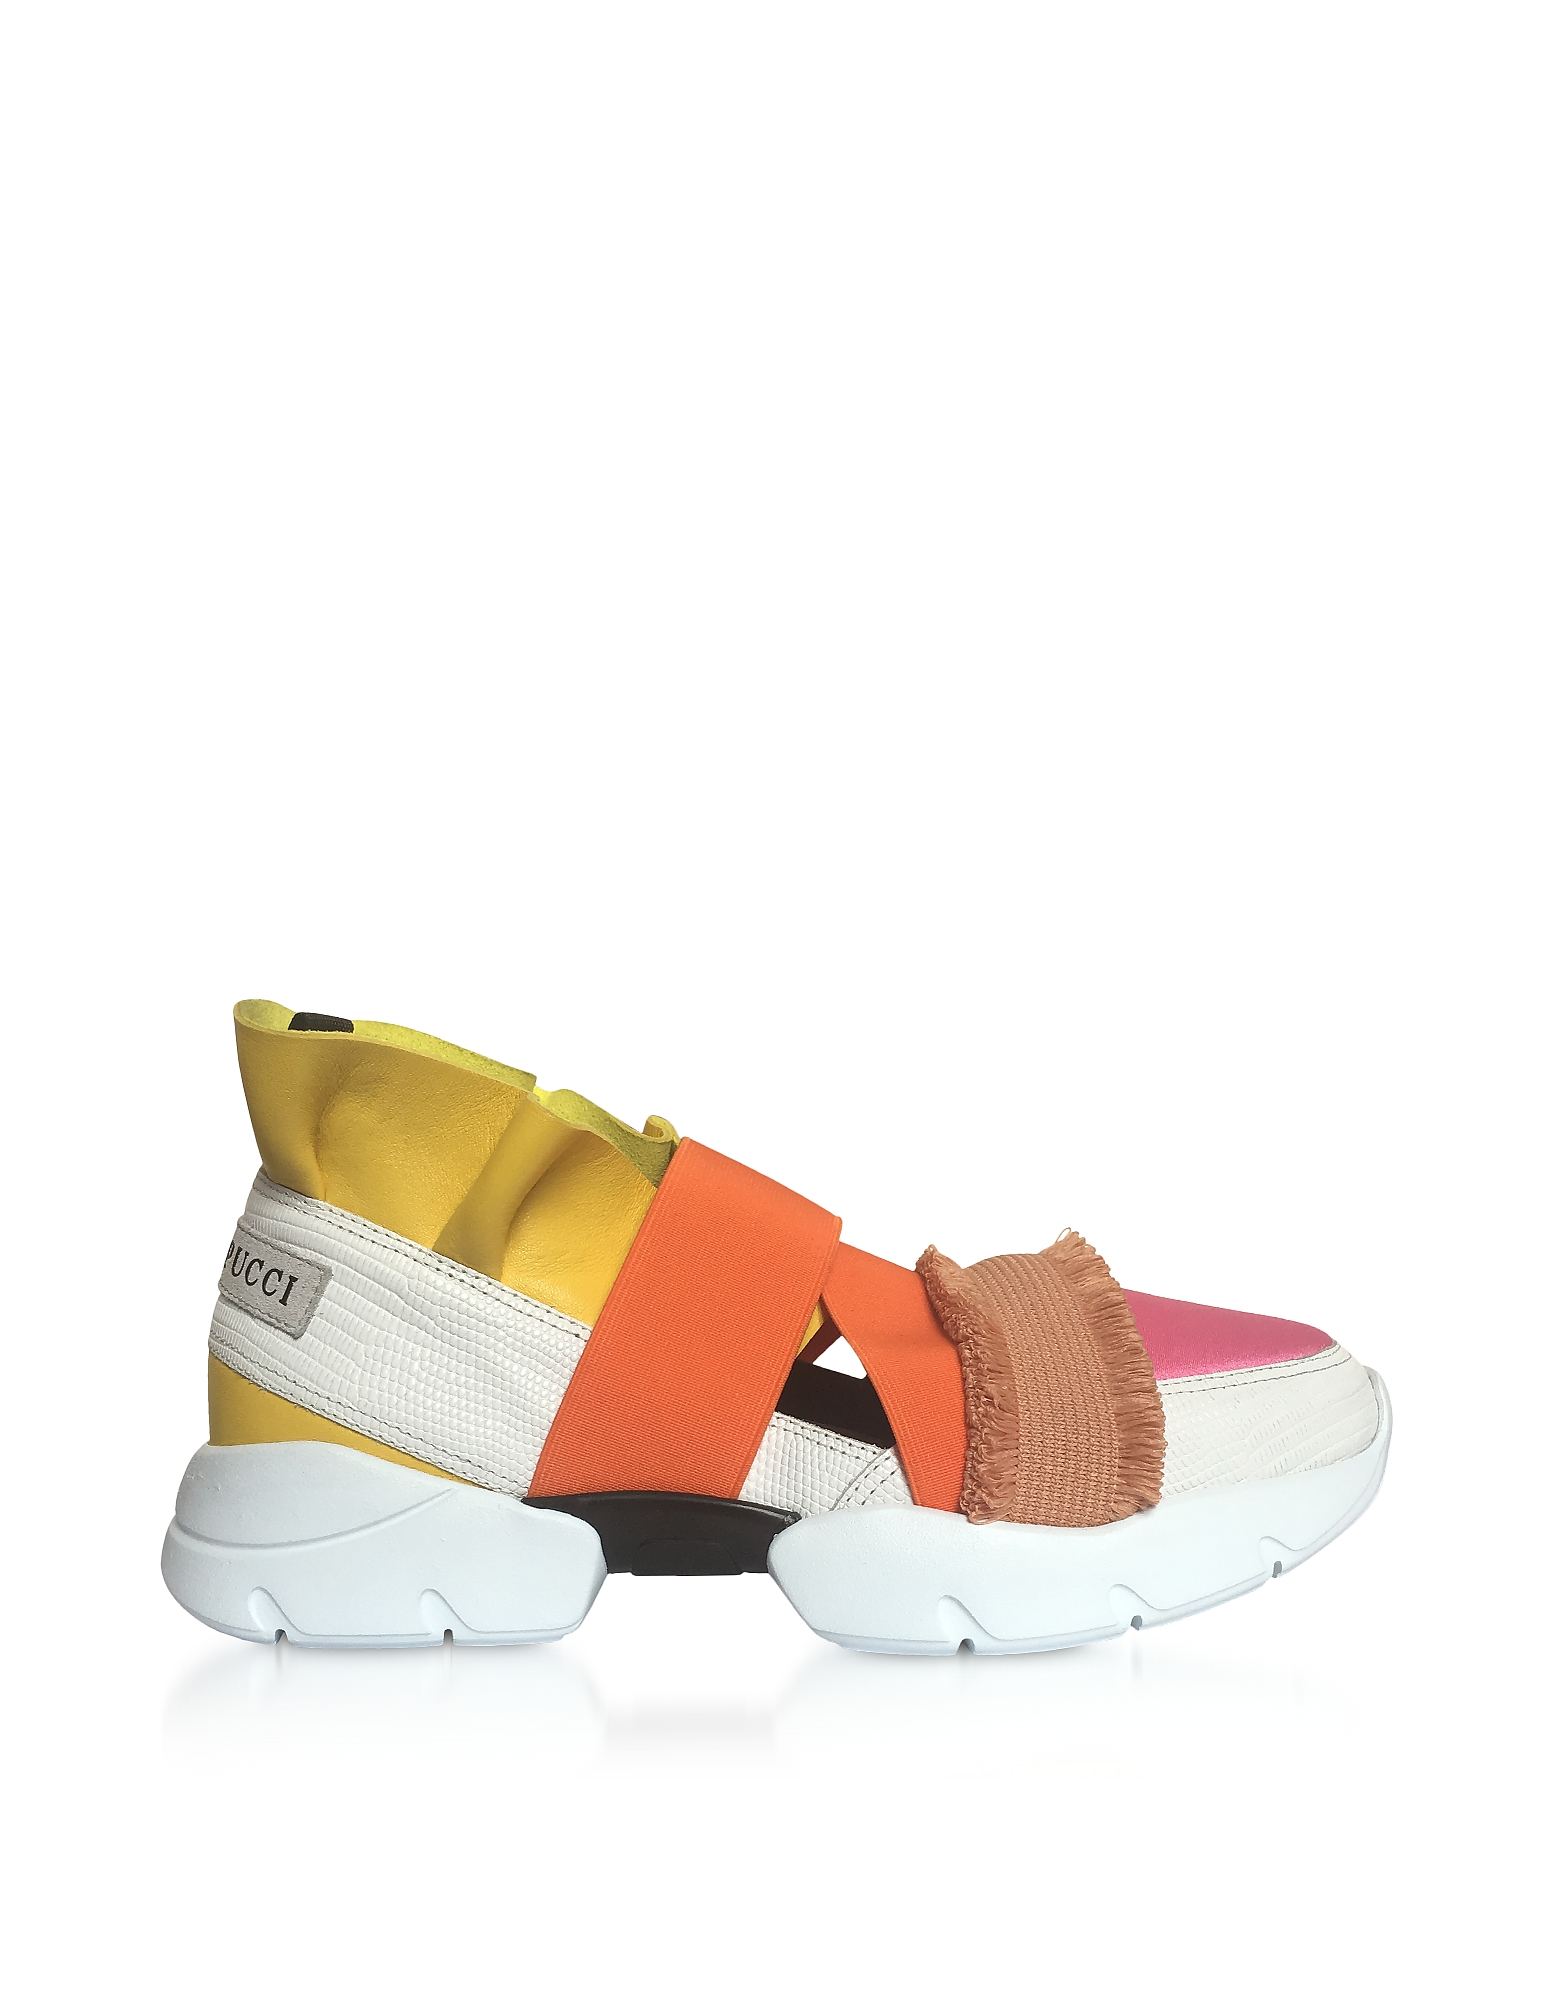 Emilio Pucci Shoes, Color Block Nappa City Up Sneakers